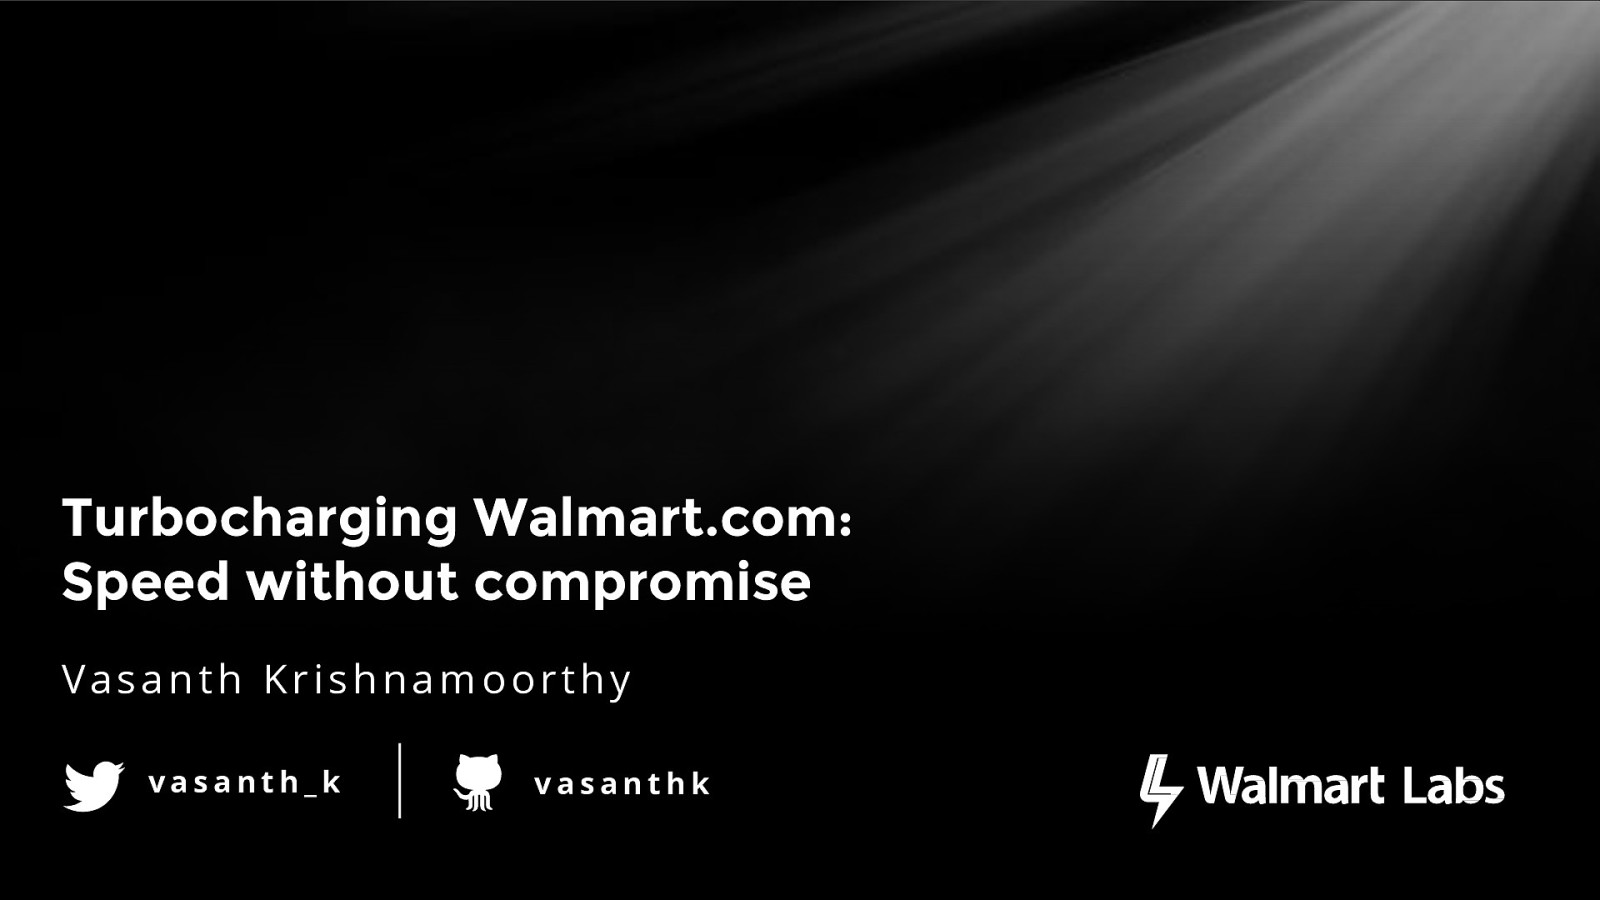 Turbocharging Walmart.com  - Speed without compromise